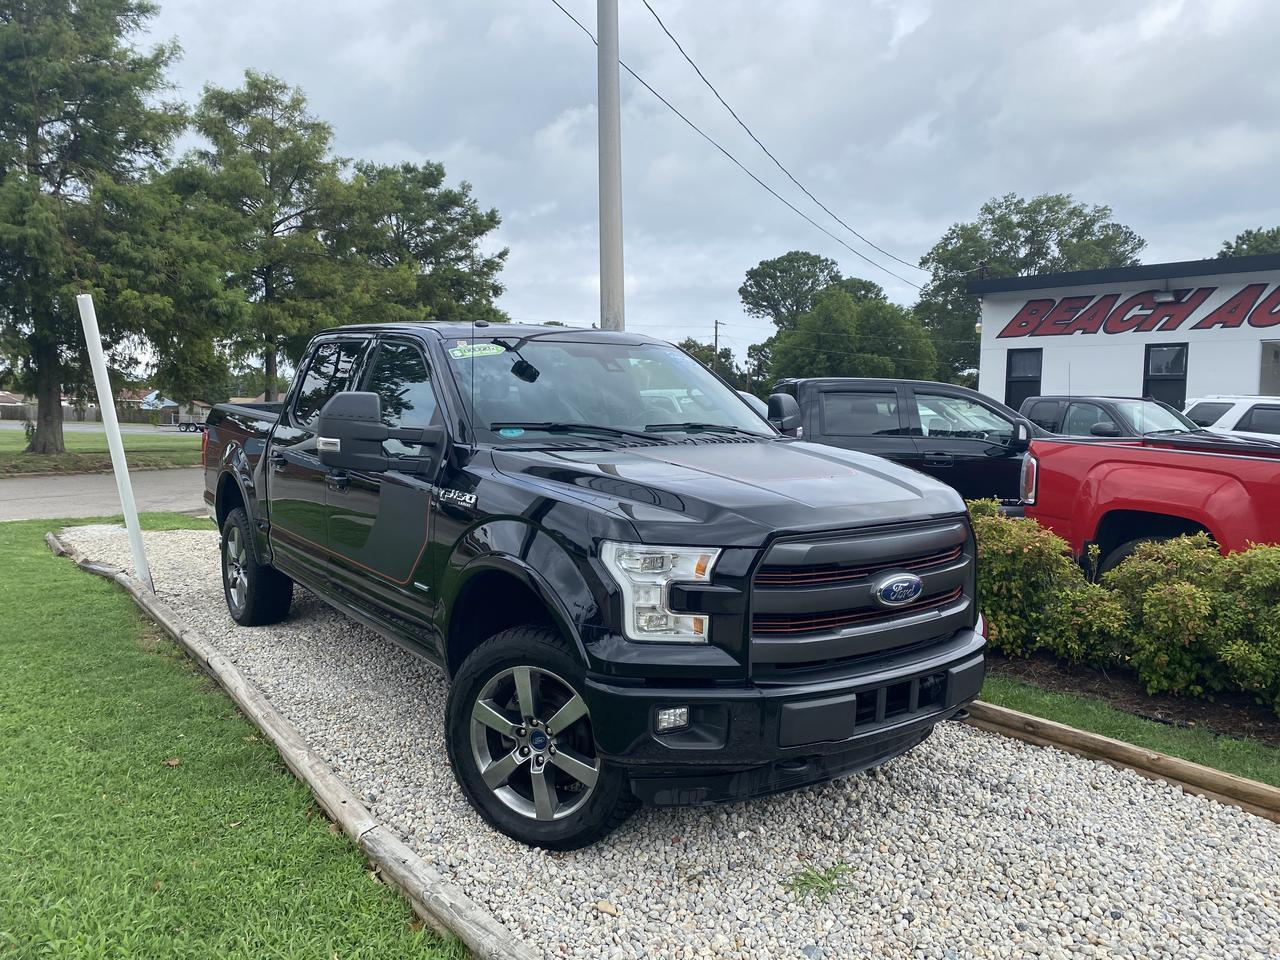 2016 FORD F-150 LARIAT SUPERCREW 4X4, WARRANTY, LEATHER, SUNROOF, NAV, HEATED/COOLED SEATS, SUNROOF, REMOTE START! Norfolk VA